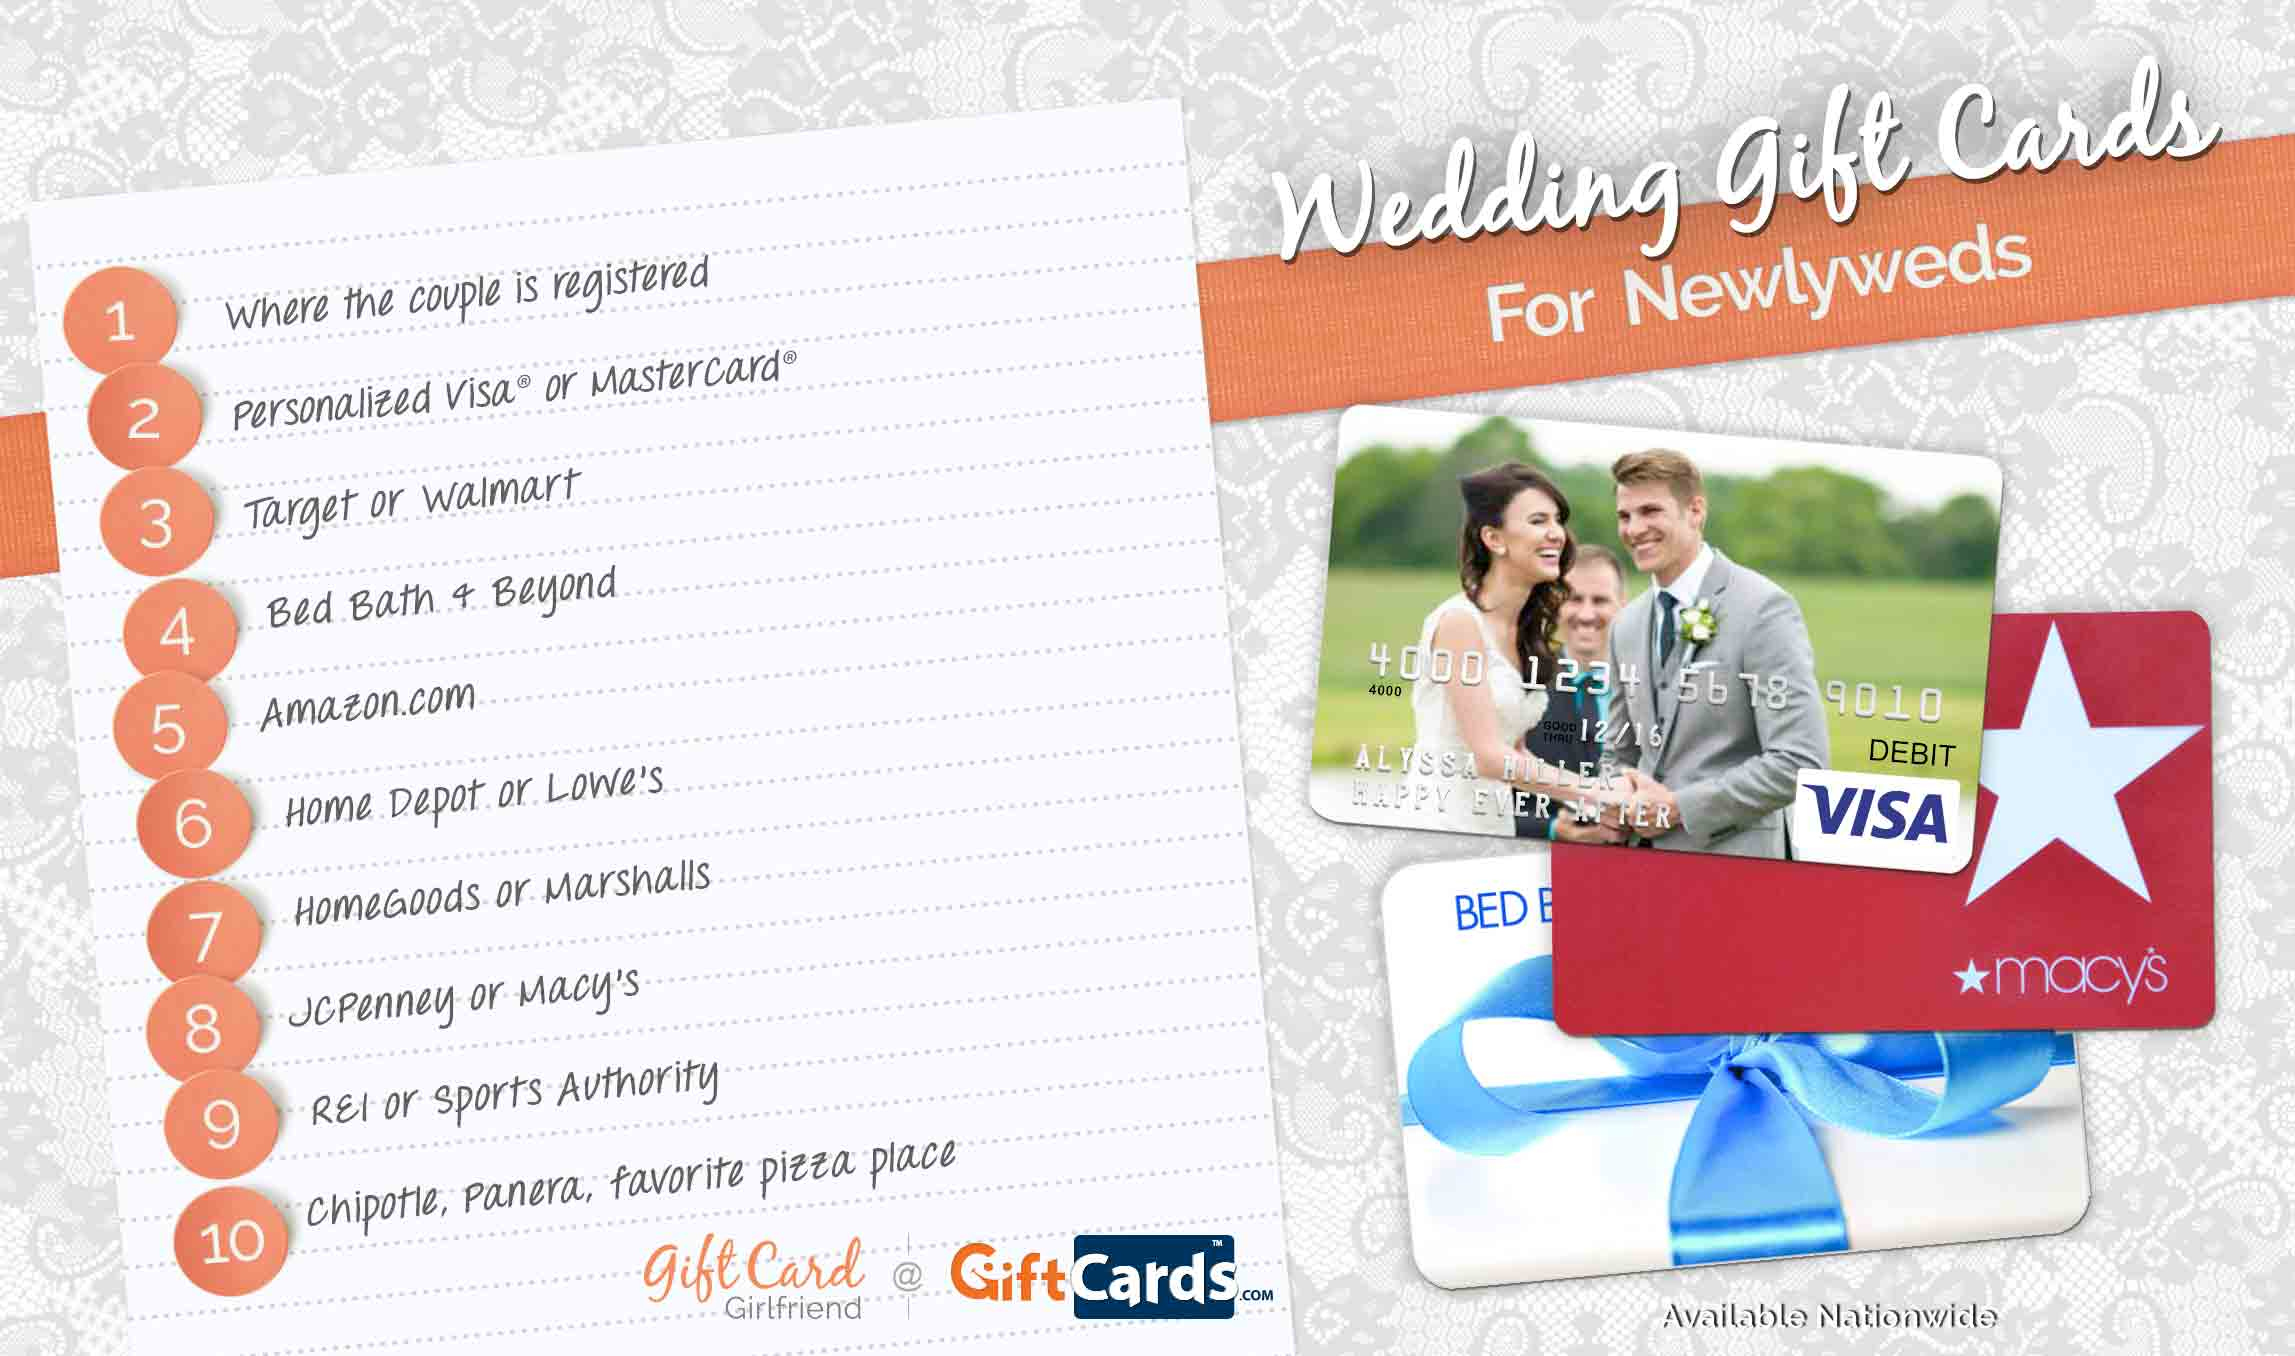 Top 10 wedding gift cards to buy for newlyweds gcg for Home depot wedding gift registry